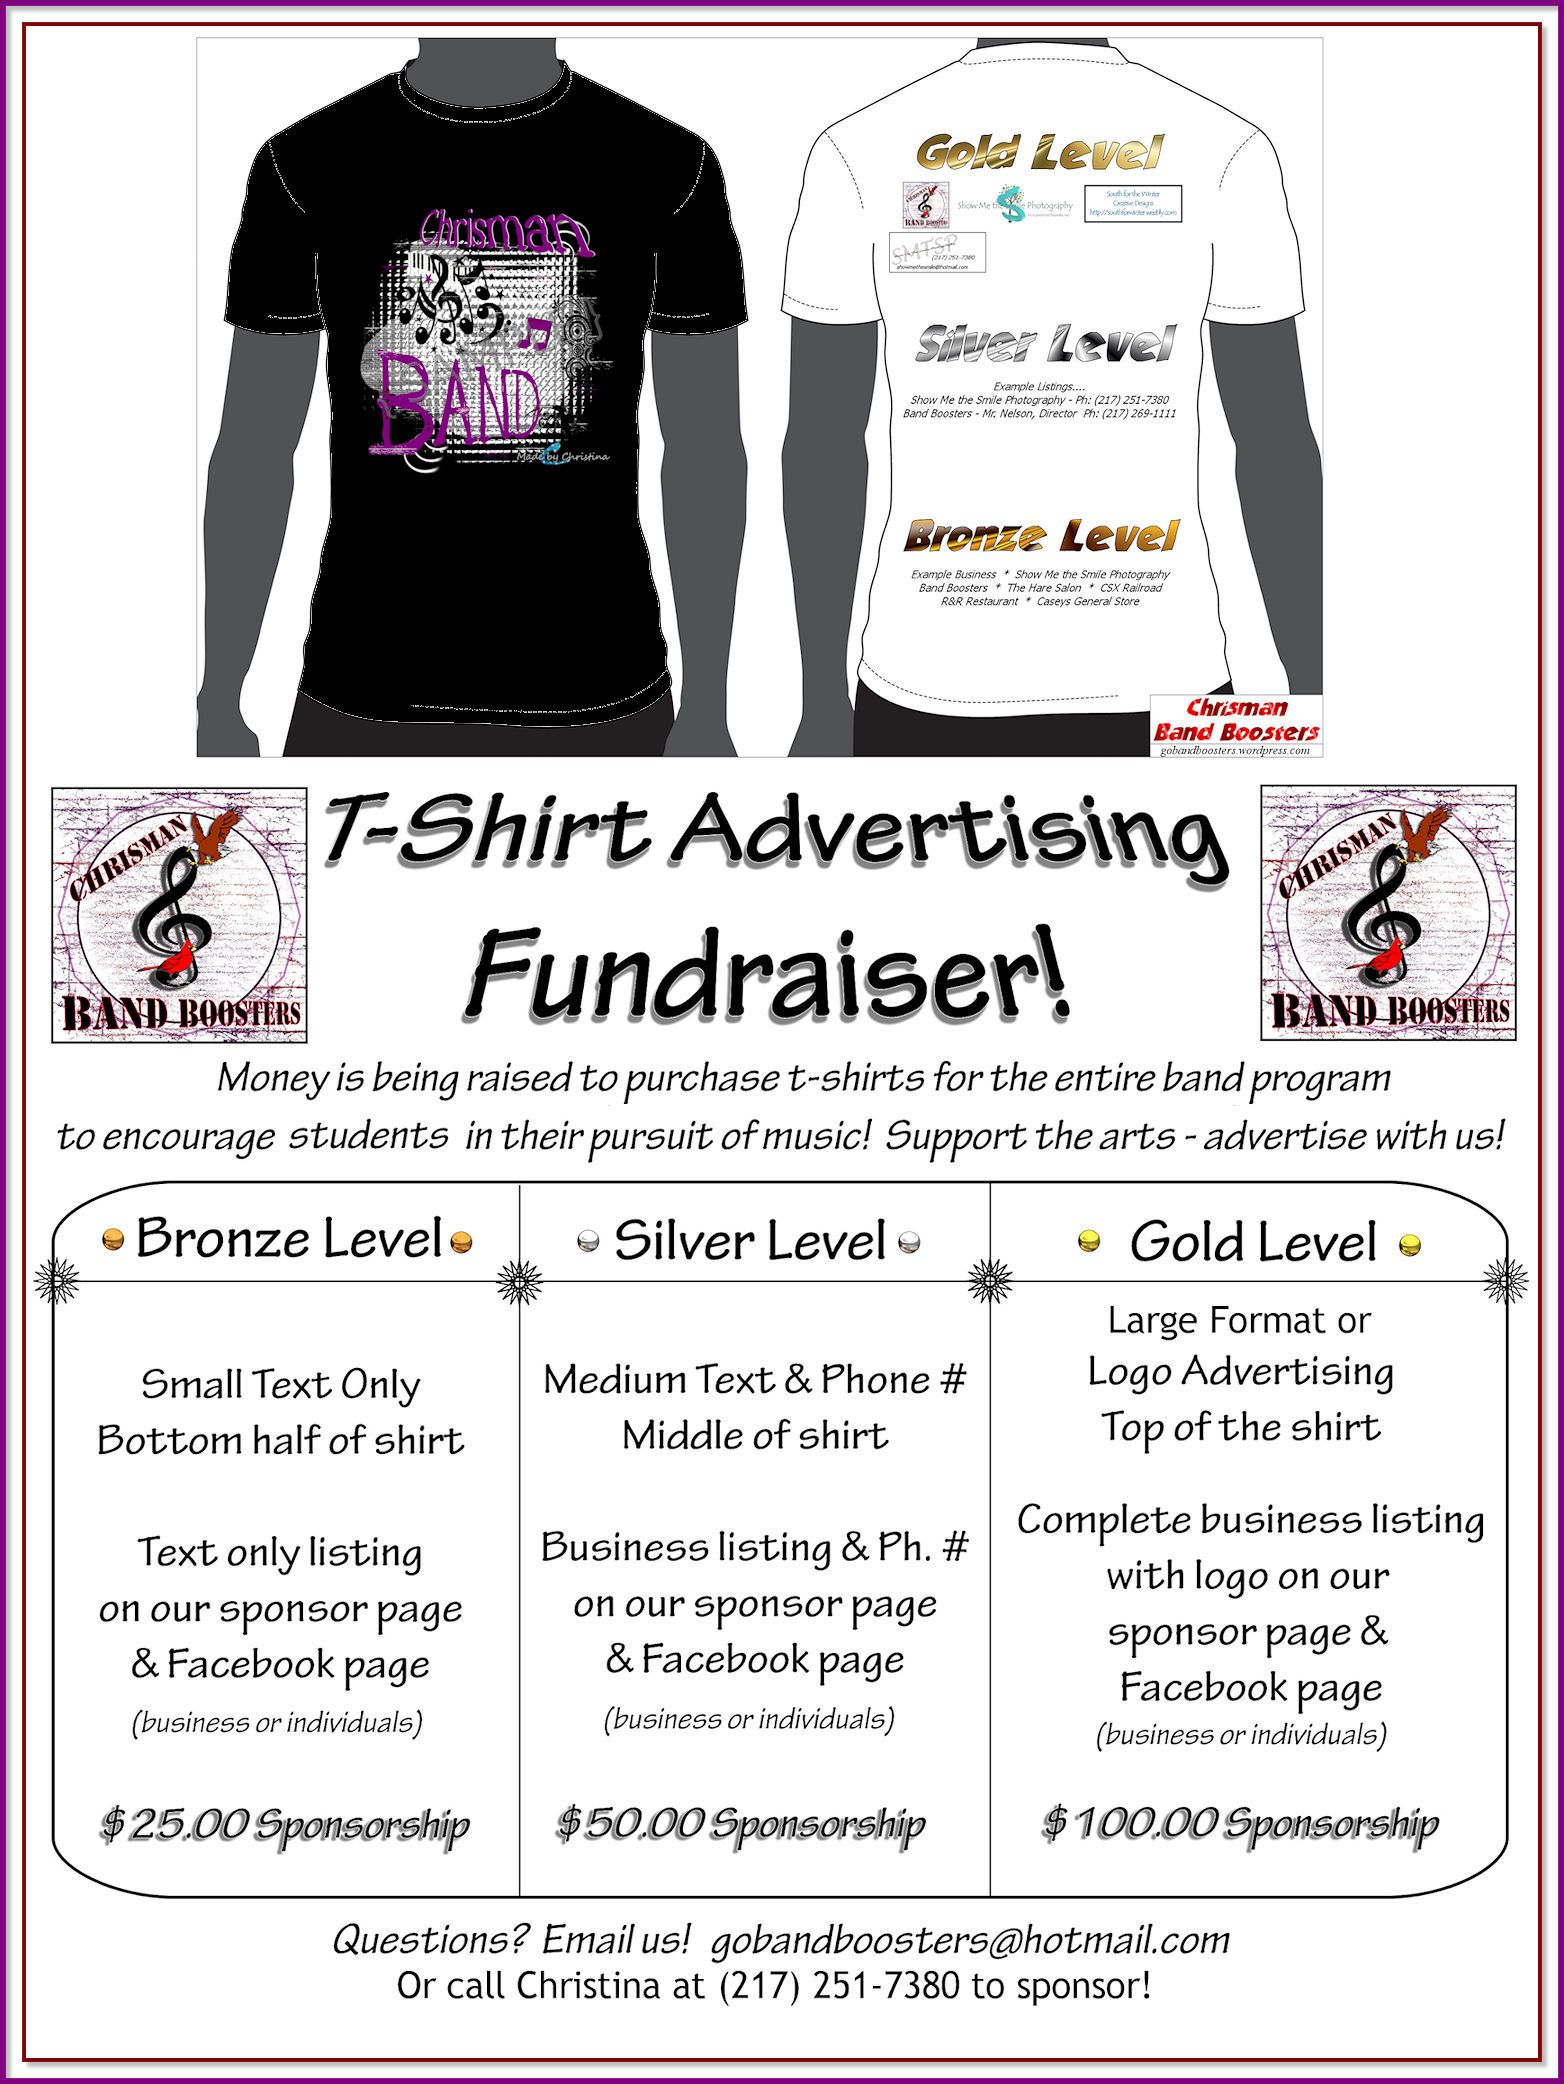 t-shirt fundraiser! | fundraiser possibilities | pinterest